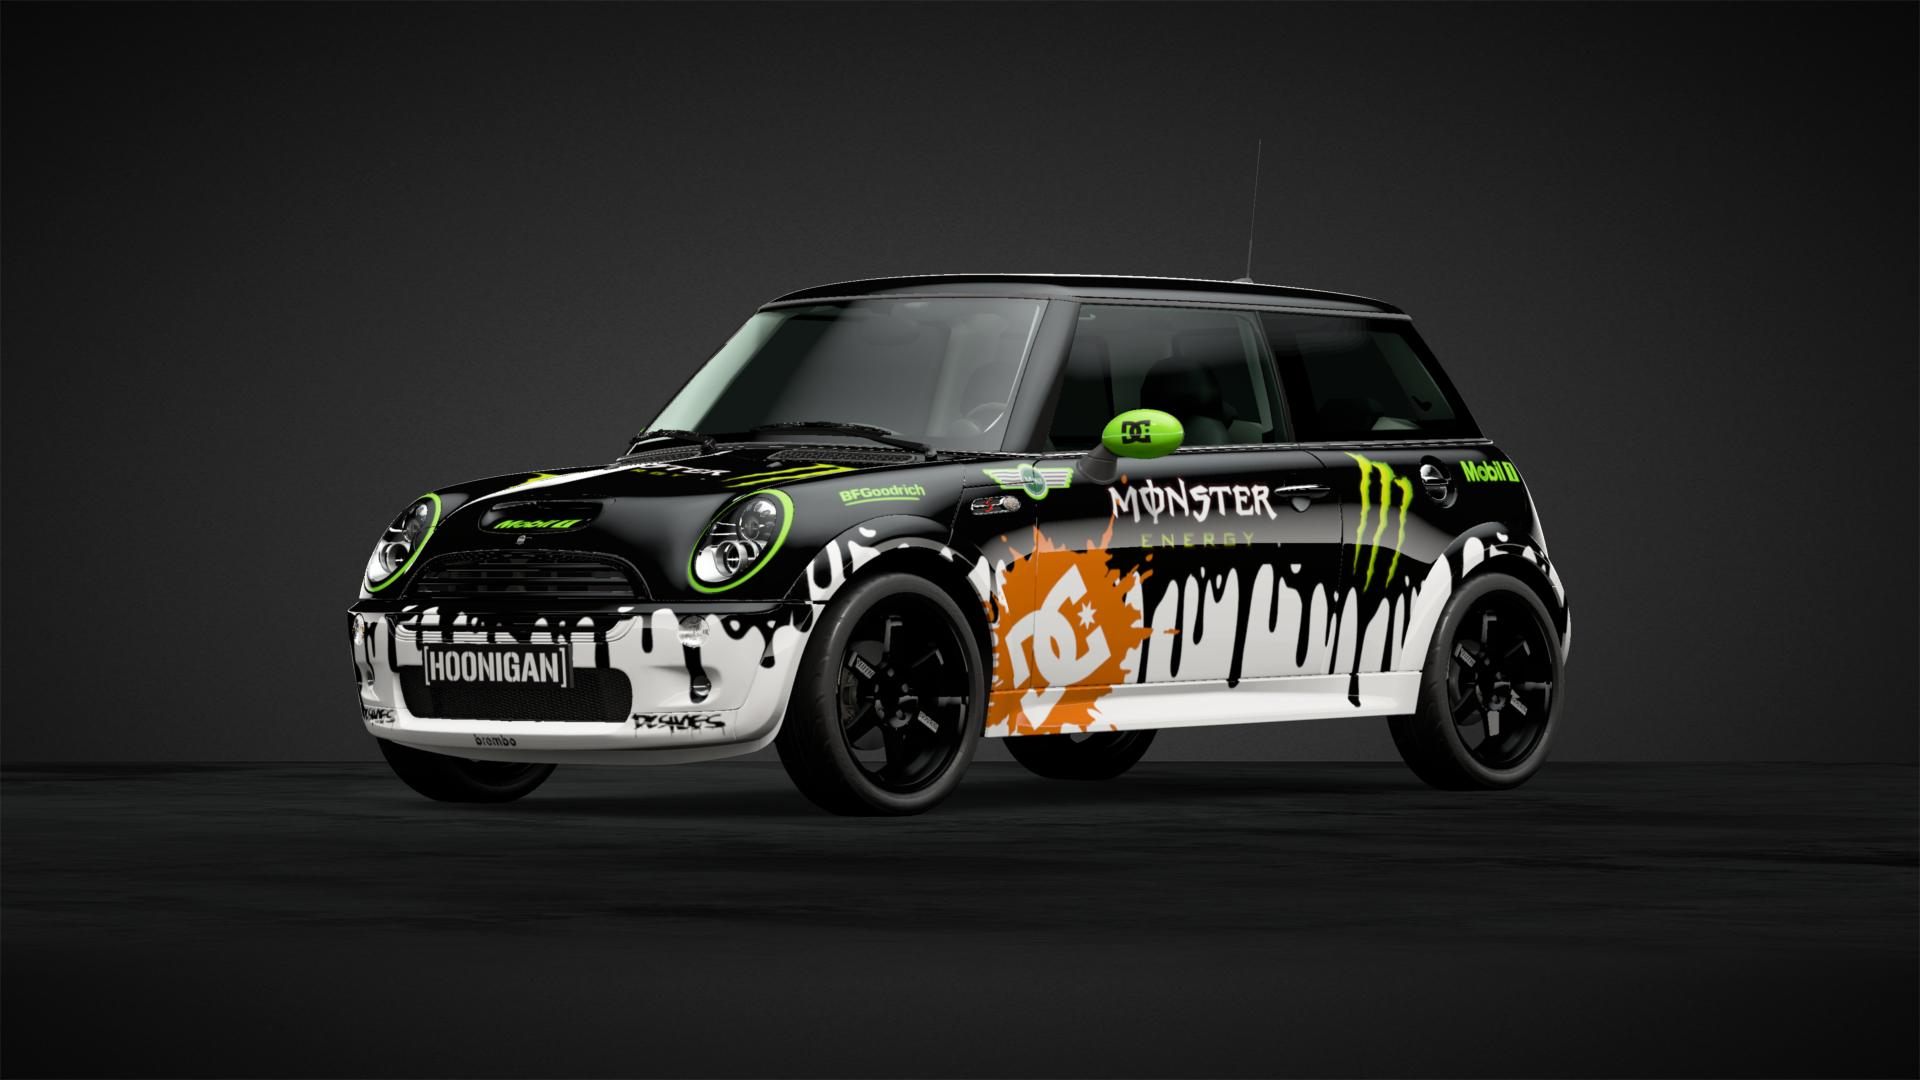 Monster mini - Car Livery by davdig   Community   Gran